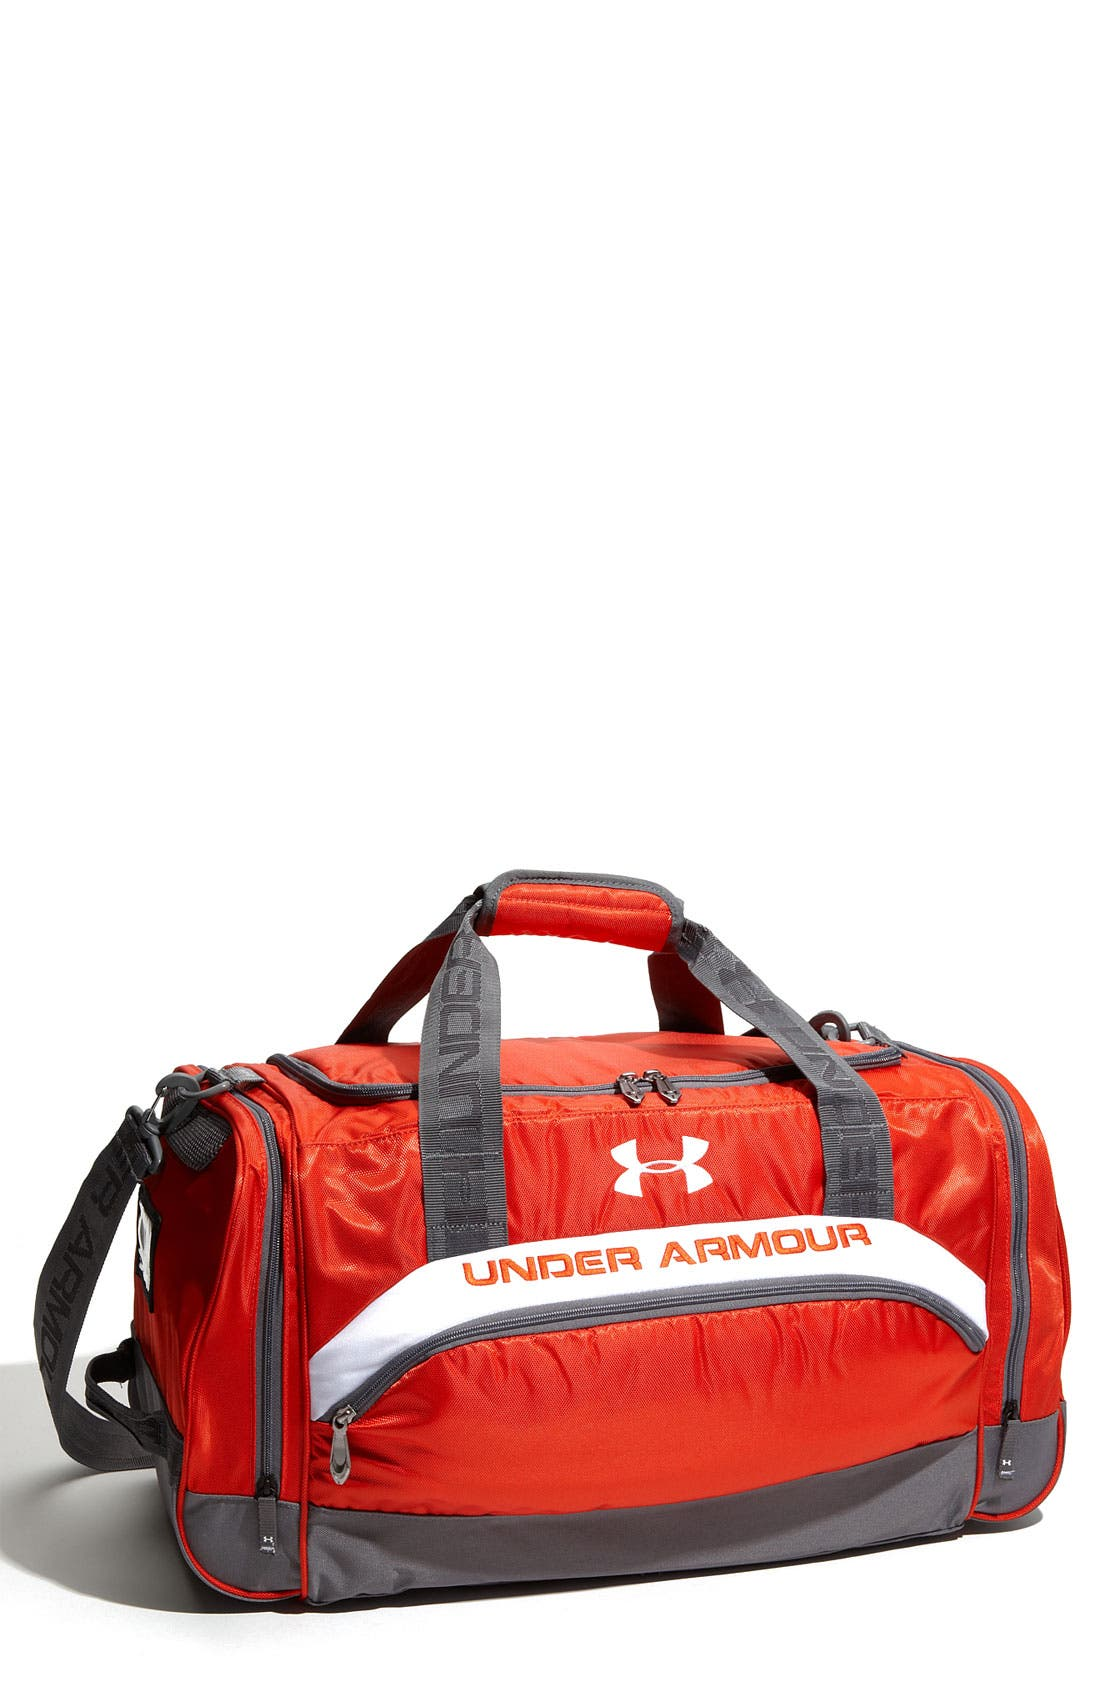 Alternate Image 1 Selected - Under Armour 'Victory Team' Duffel Bag